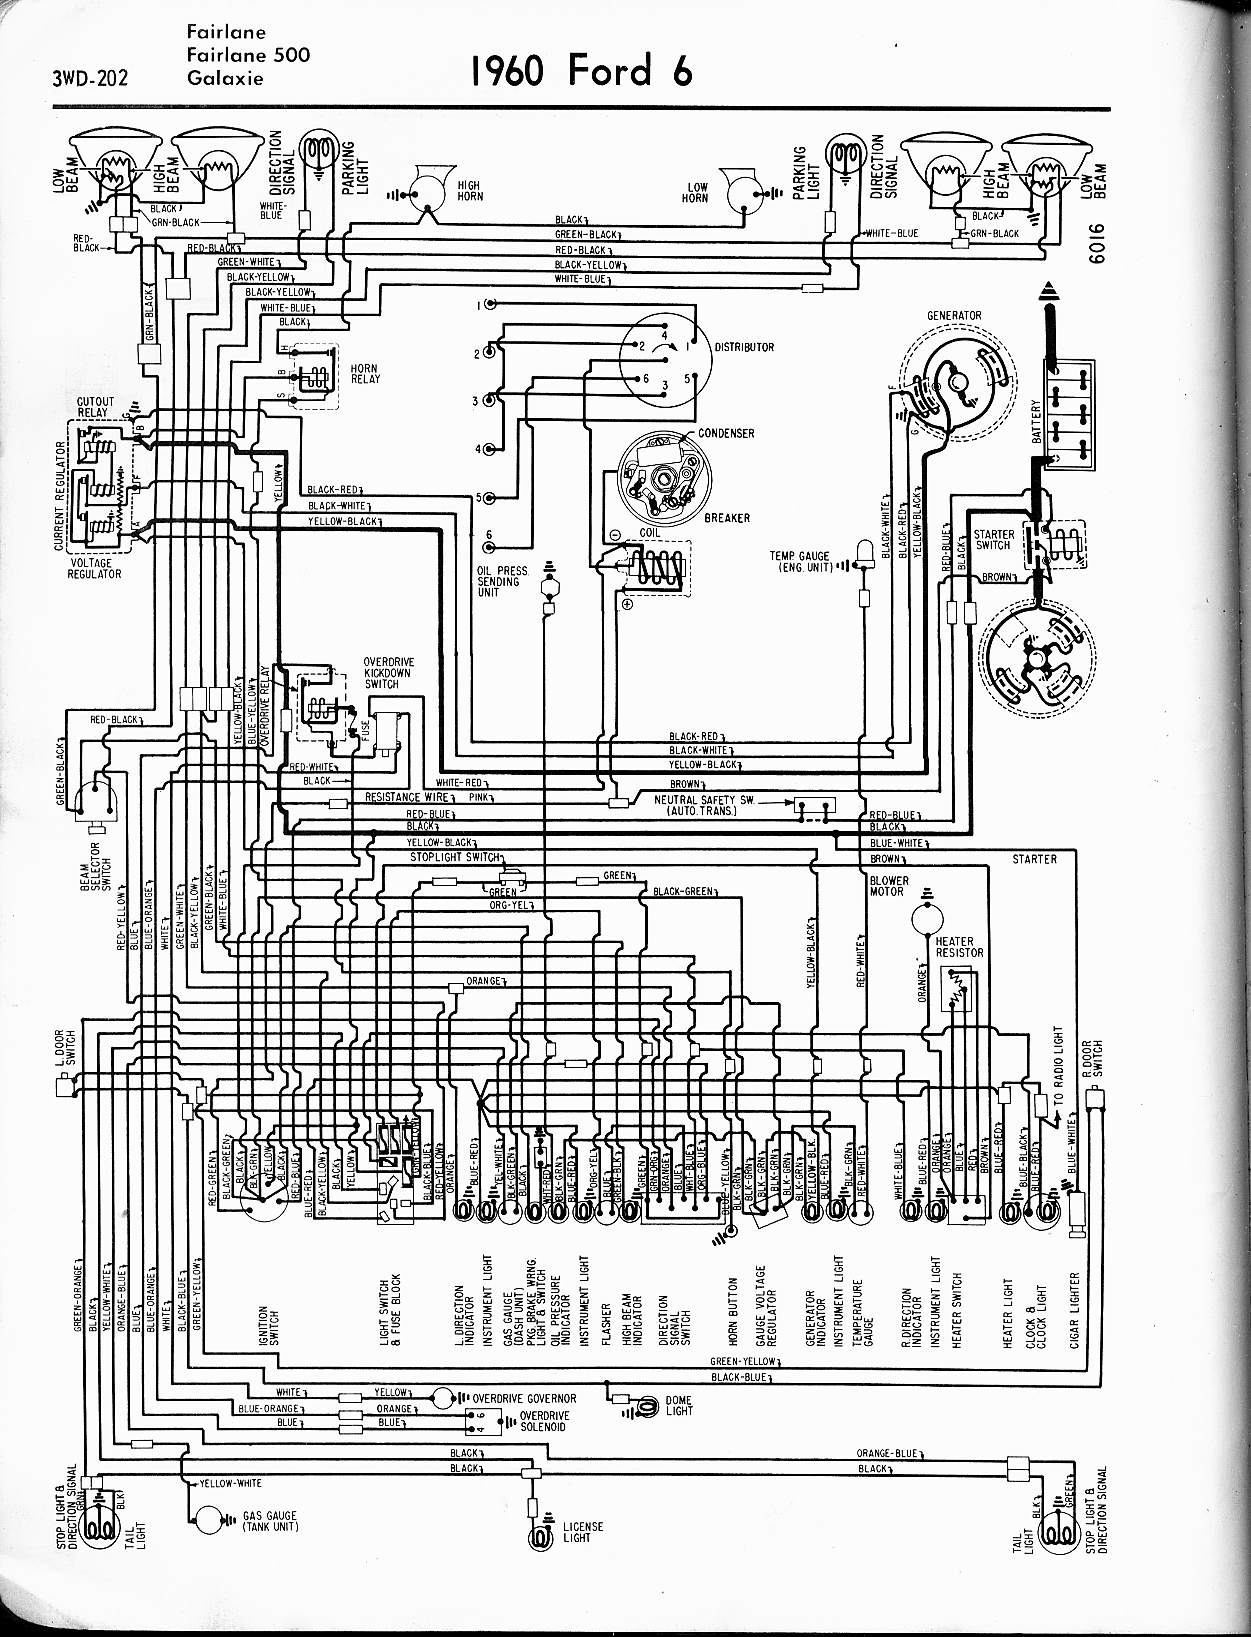 MWire5765 202 1979 ford f100 turn signal wiring diagram wiring diagram simonand 1969 Ford F100 Steering Column Wiring Diagram at crackthecode.co